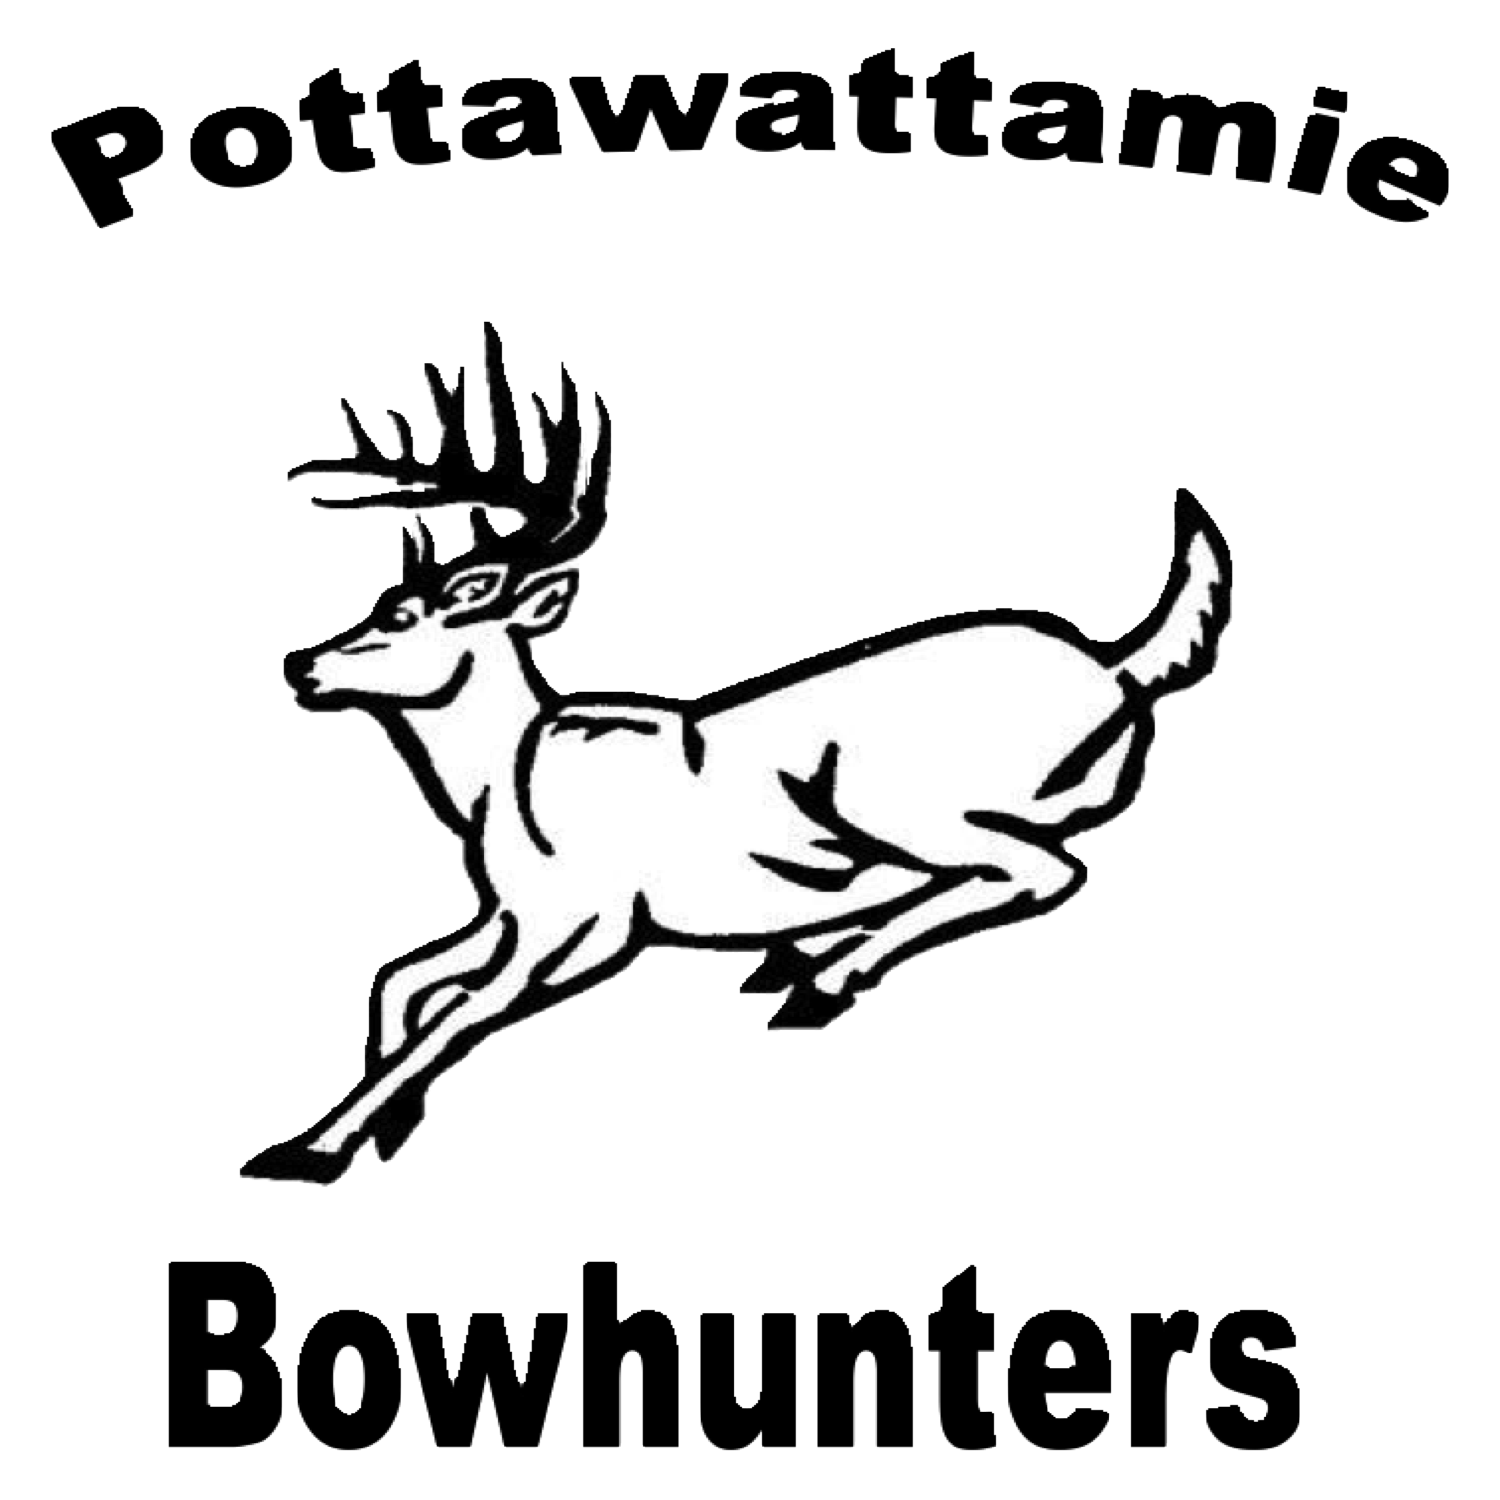 Pottawattamie BowHunters Club